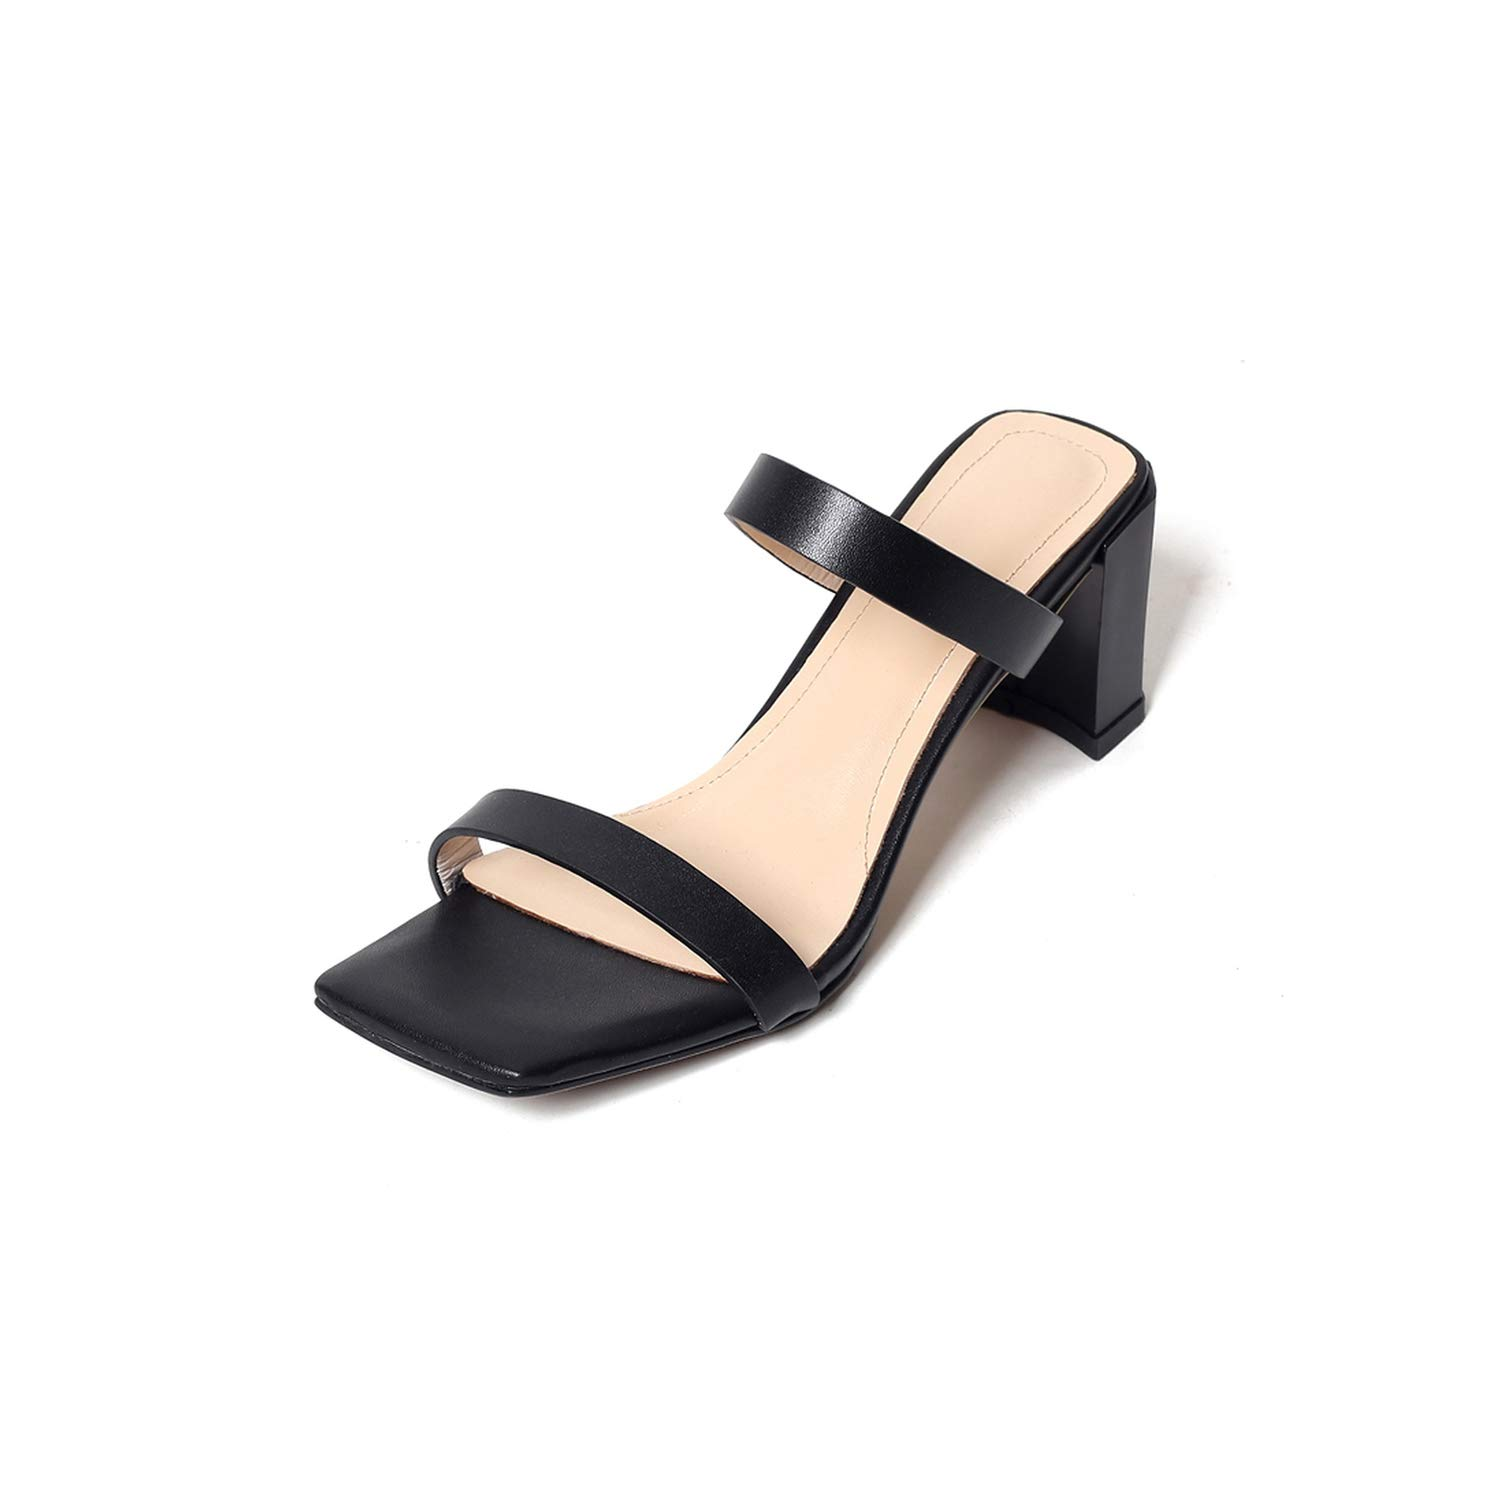 Black Fairly Thick Heels Slippers Women Summer Ladies Square Toe Mules shoes Real Leather Slides